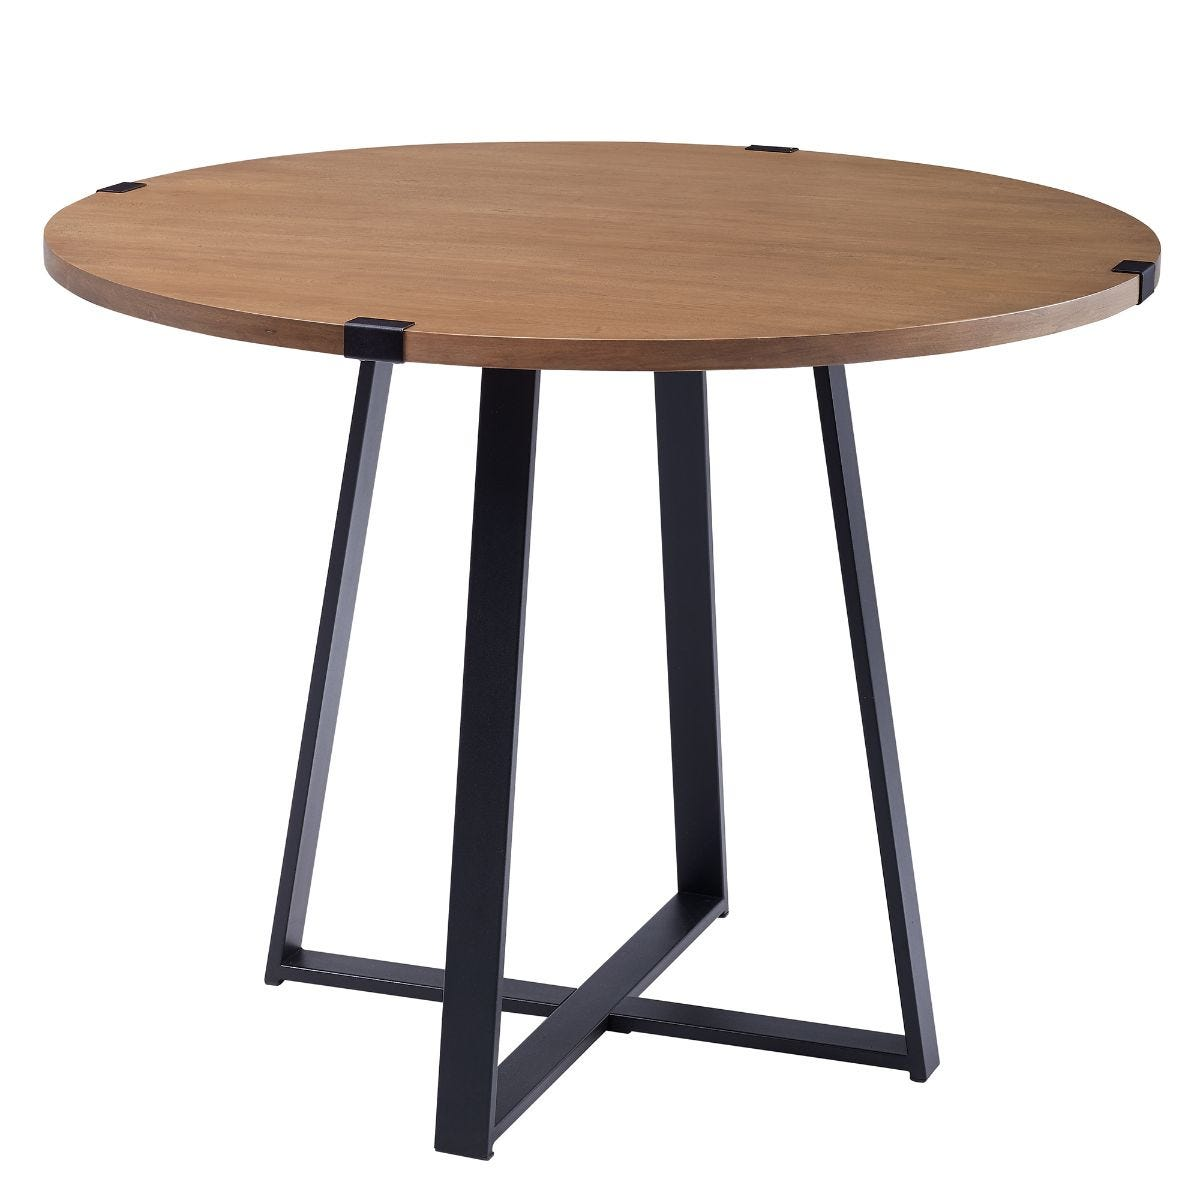 40 Inch Round Metal Wrap Dining Table English Oak and Black